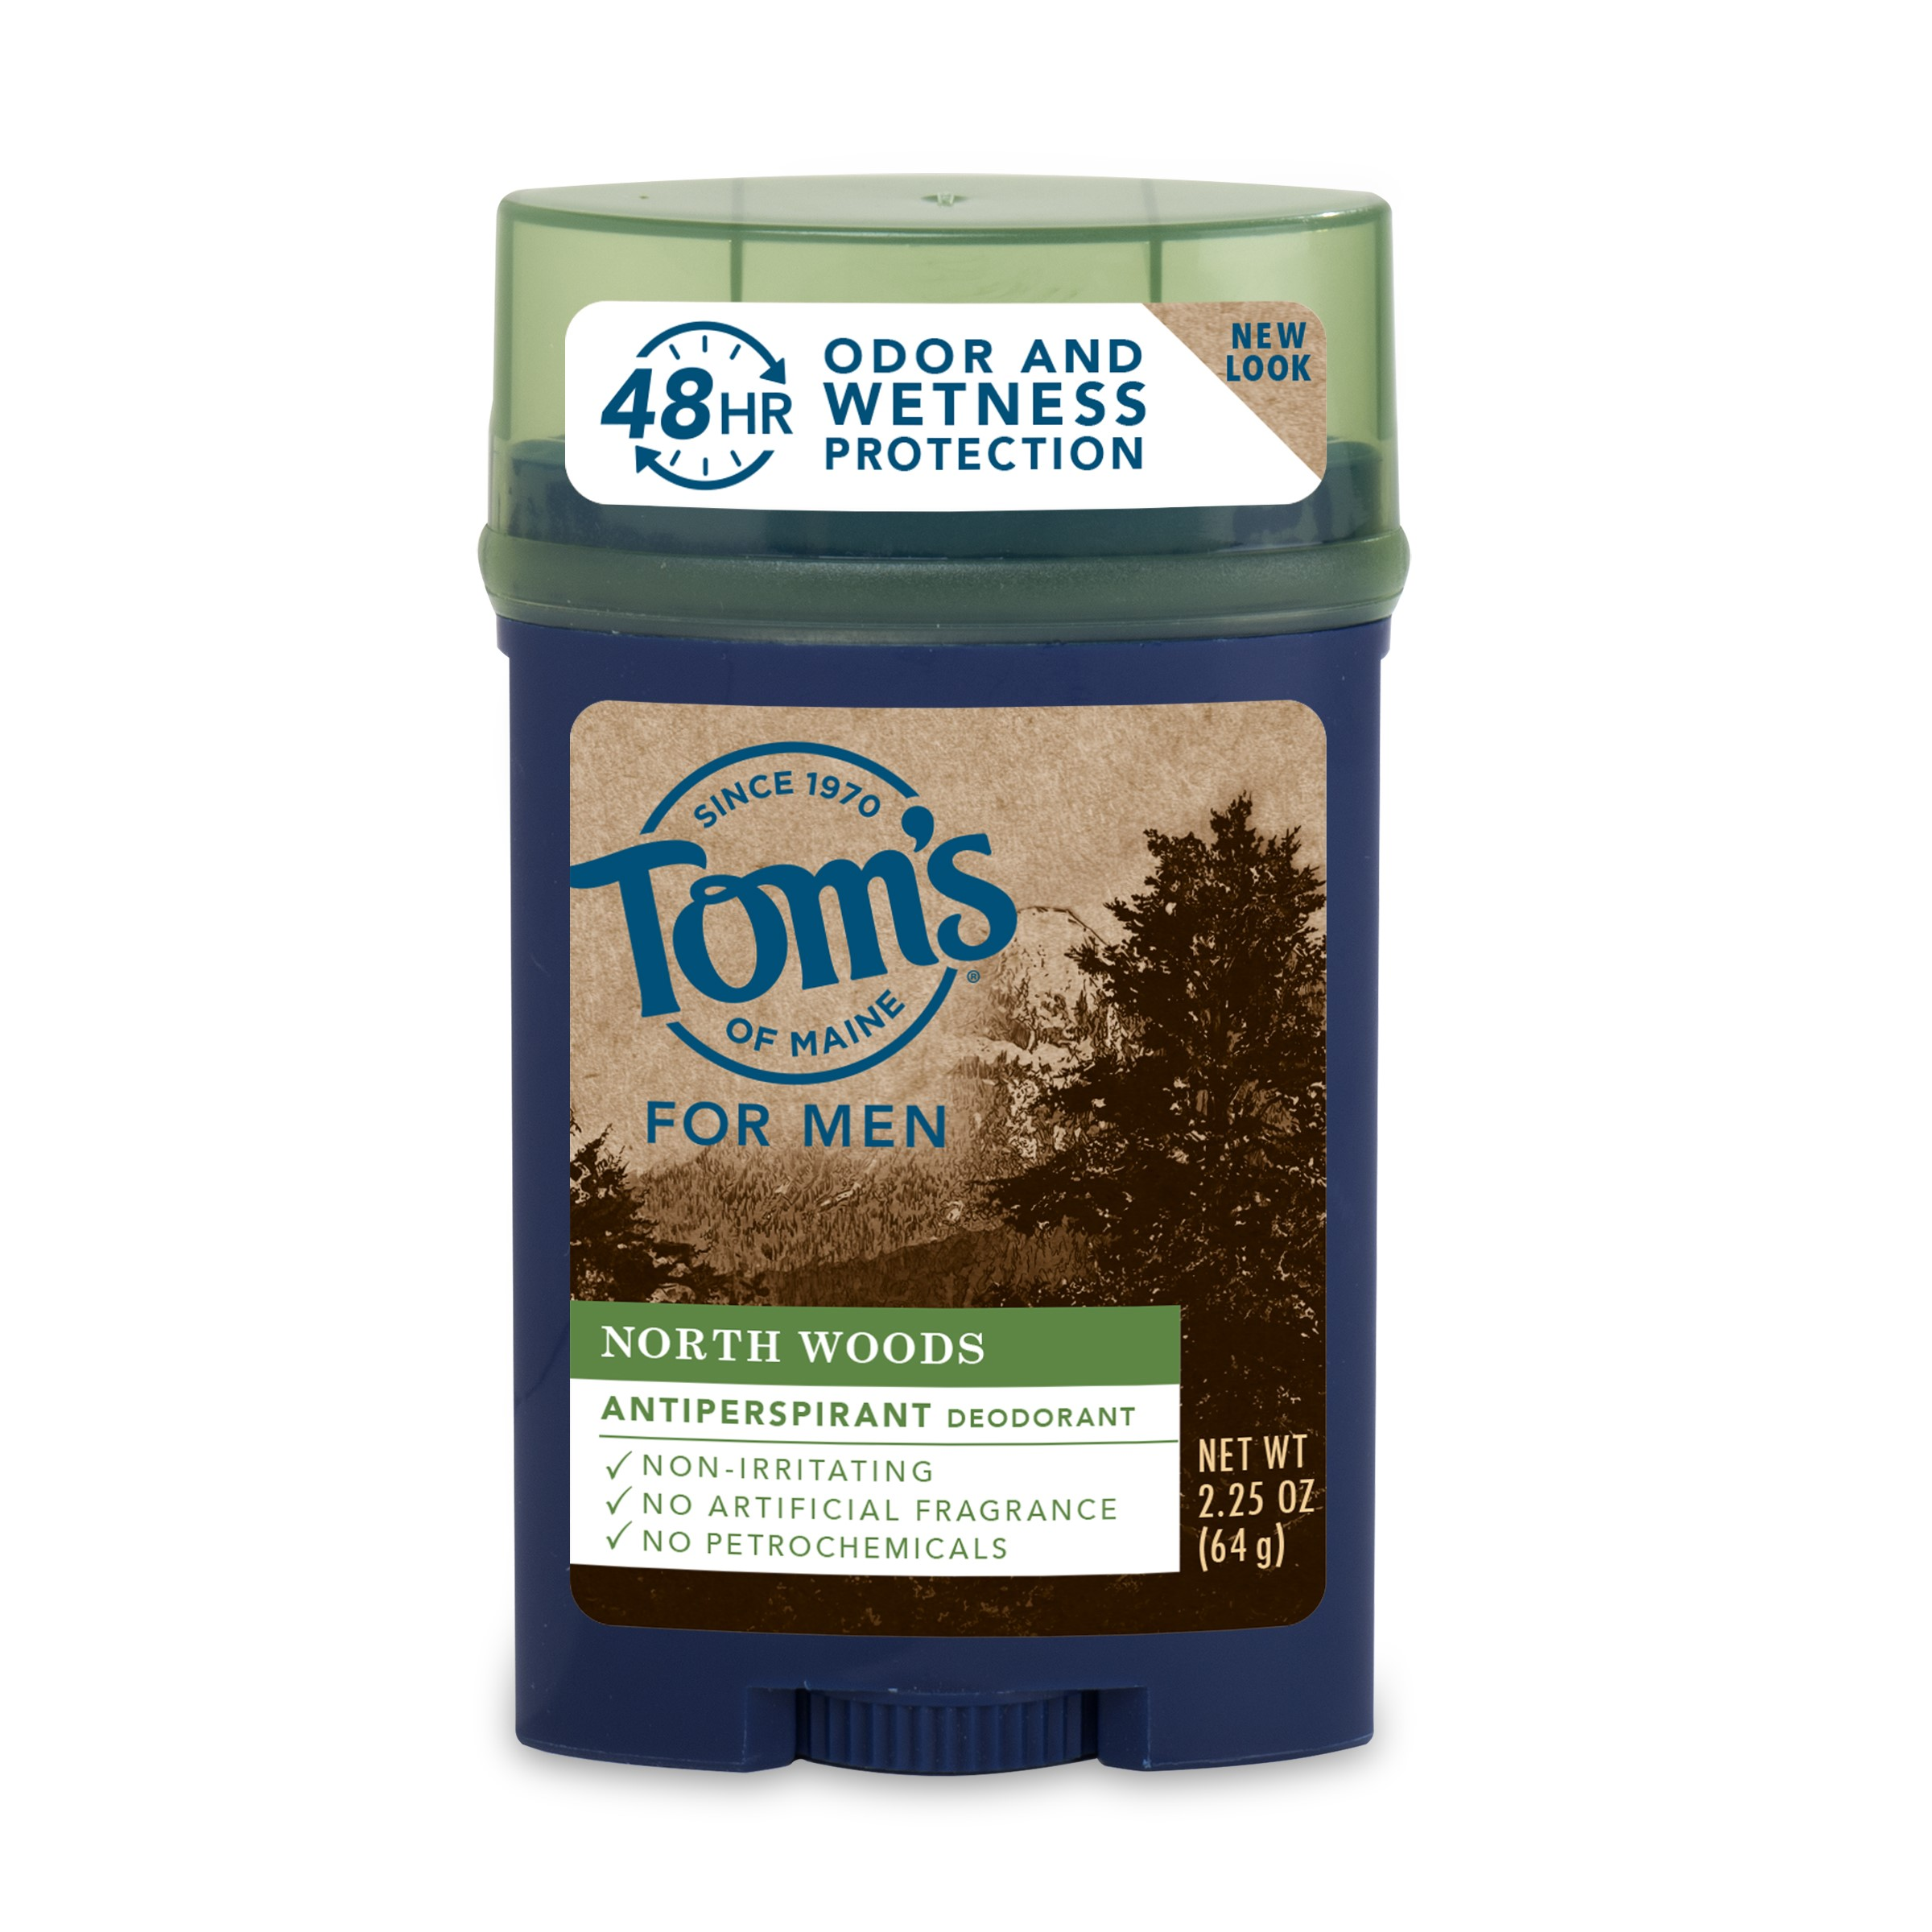 Tom's of Maine 24-Hour Long-Lasting Men's Antiperspirant and Deodorant, Northwoods, 2.25 Oz